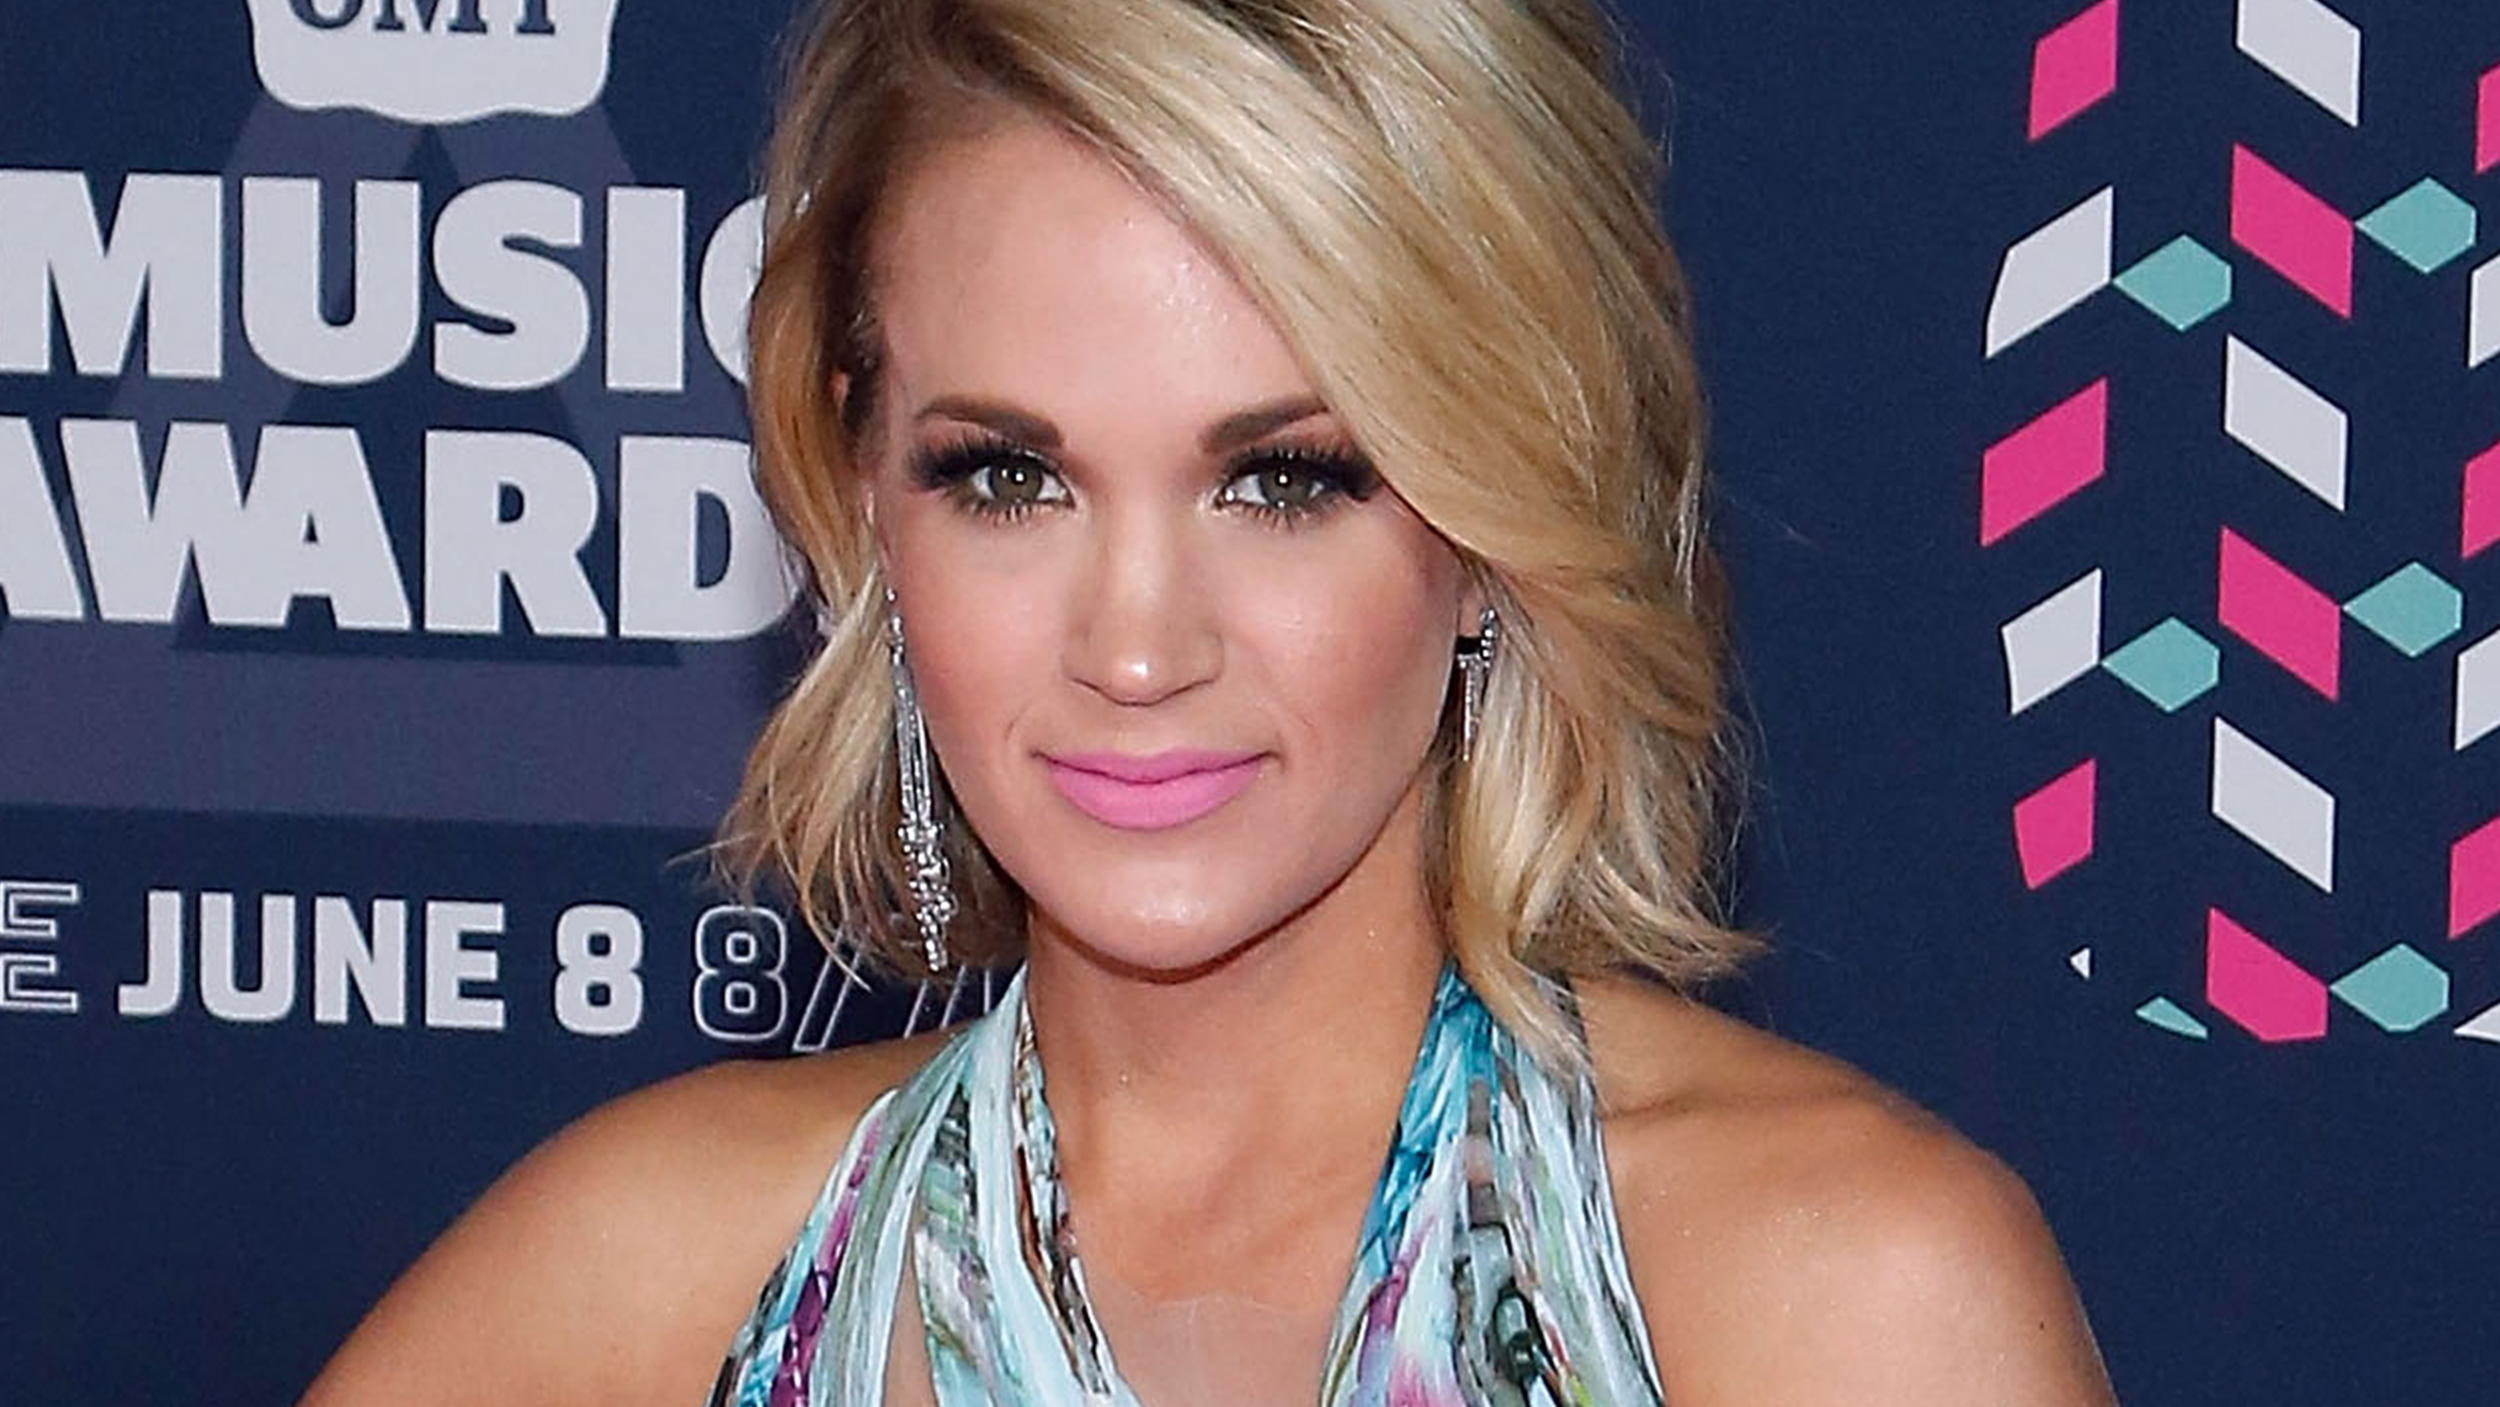 Carrie Underwood Reveals The Celebrity Crush She Never Wants To Meet